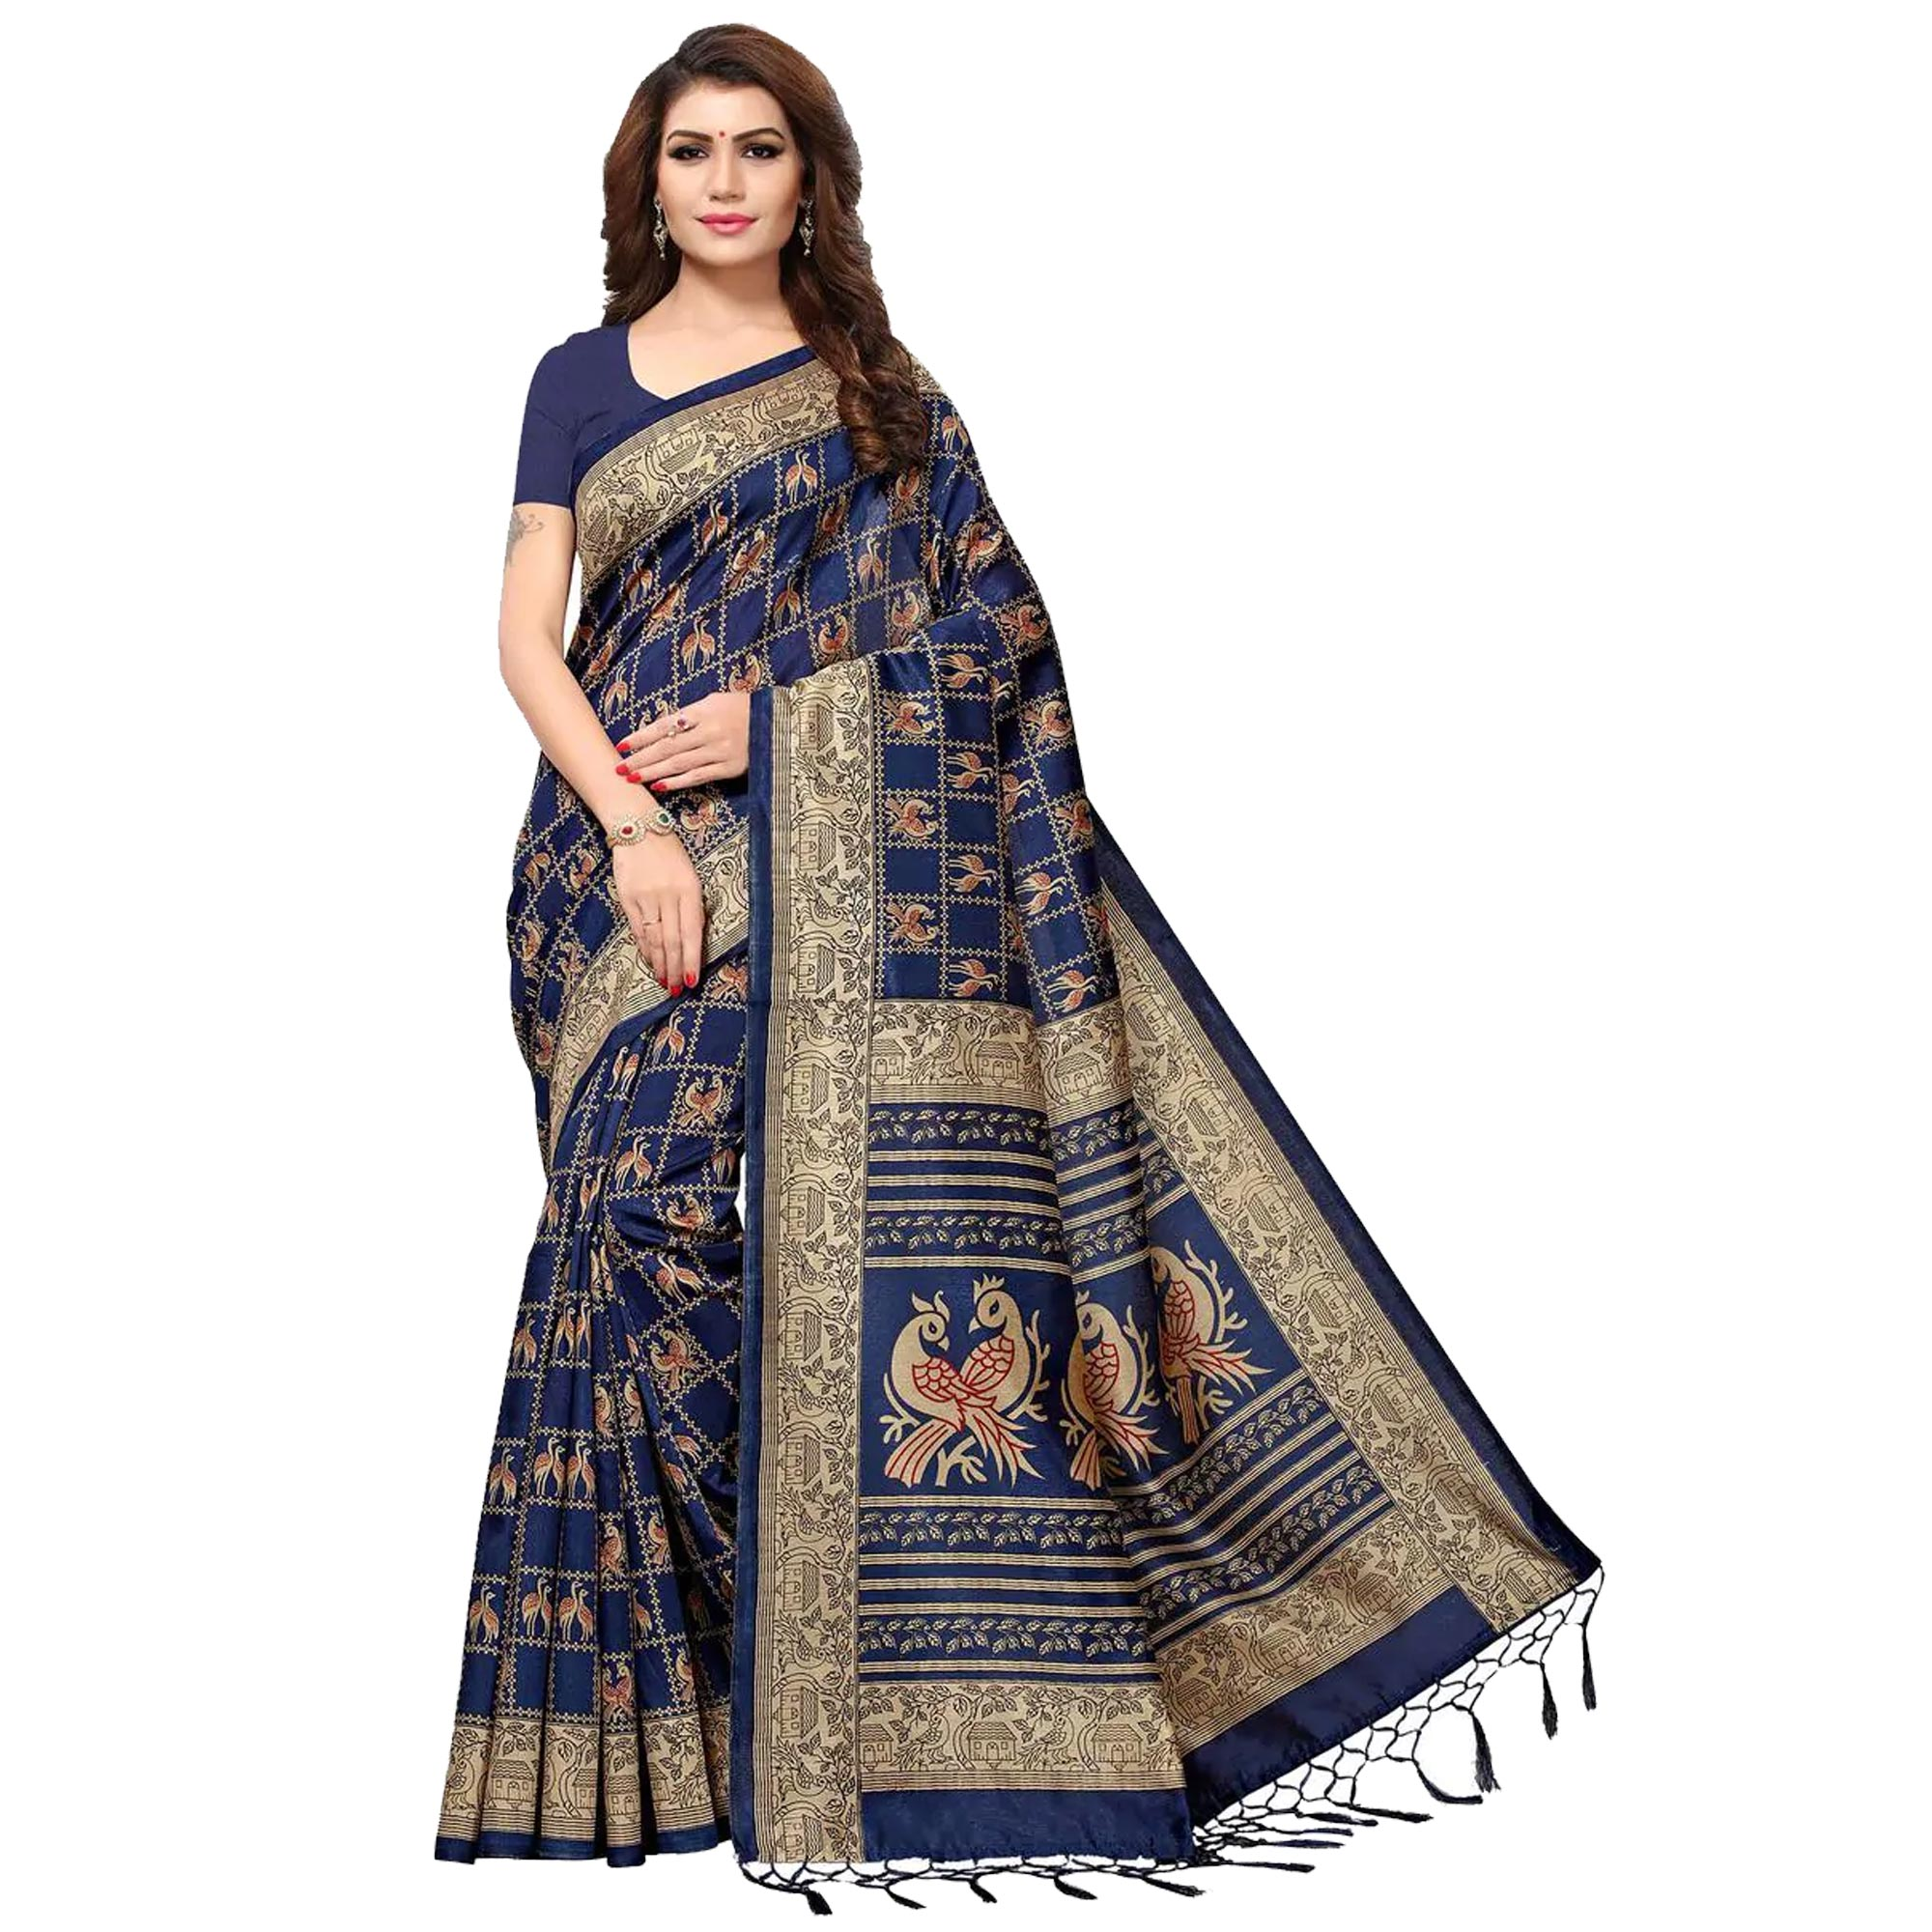 Mesmeric Festive Wear Printed Saree - Pack of 3